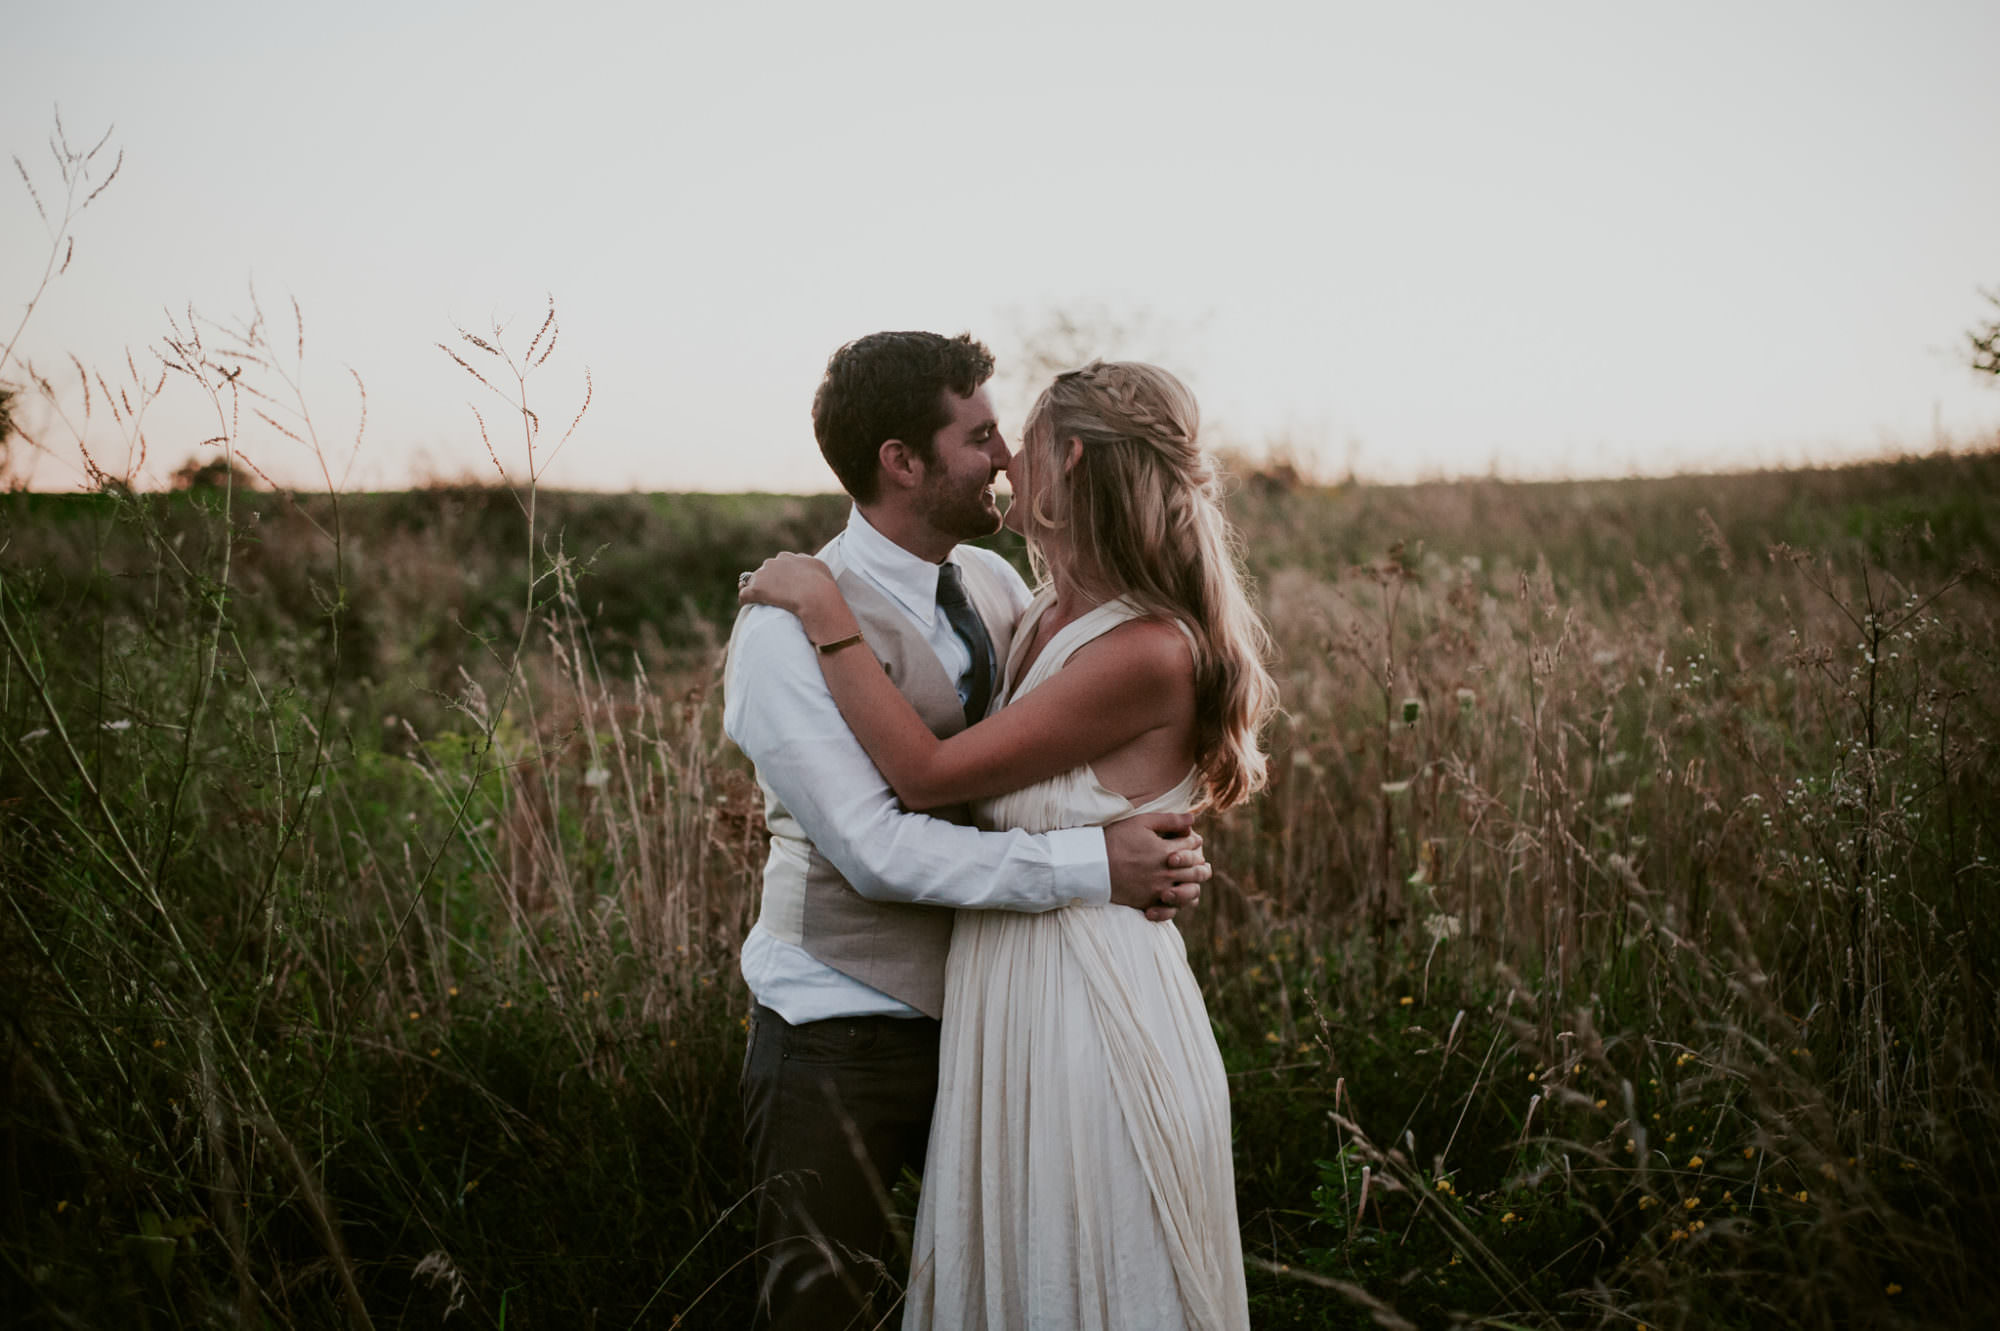 Couple in a Field on Farm on Wedding Day - Natural Intuition Photography